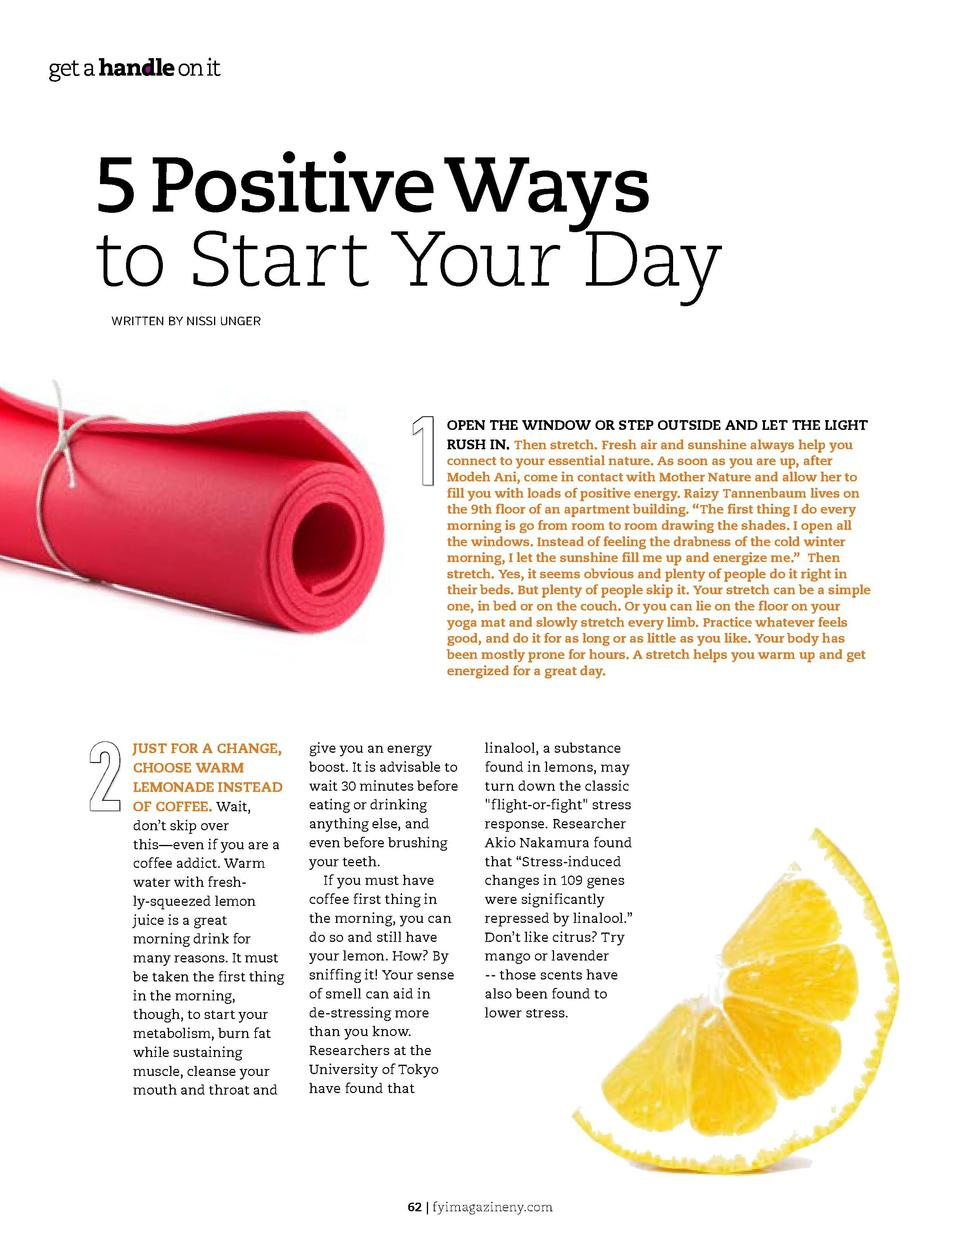 5 Positive Ways to Start Your Day WRITTEN BY NISSI UNGER  1 2  JUST FOR A CHANGE, CHOOSE WARM LEMONADE INSTEAD OF COFFEE. ...